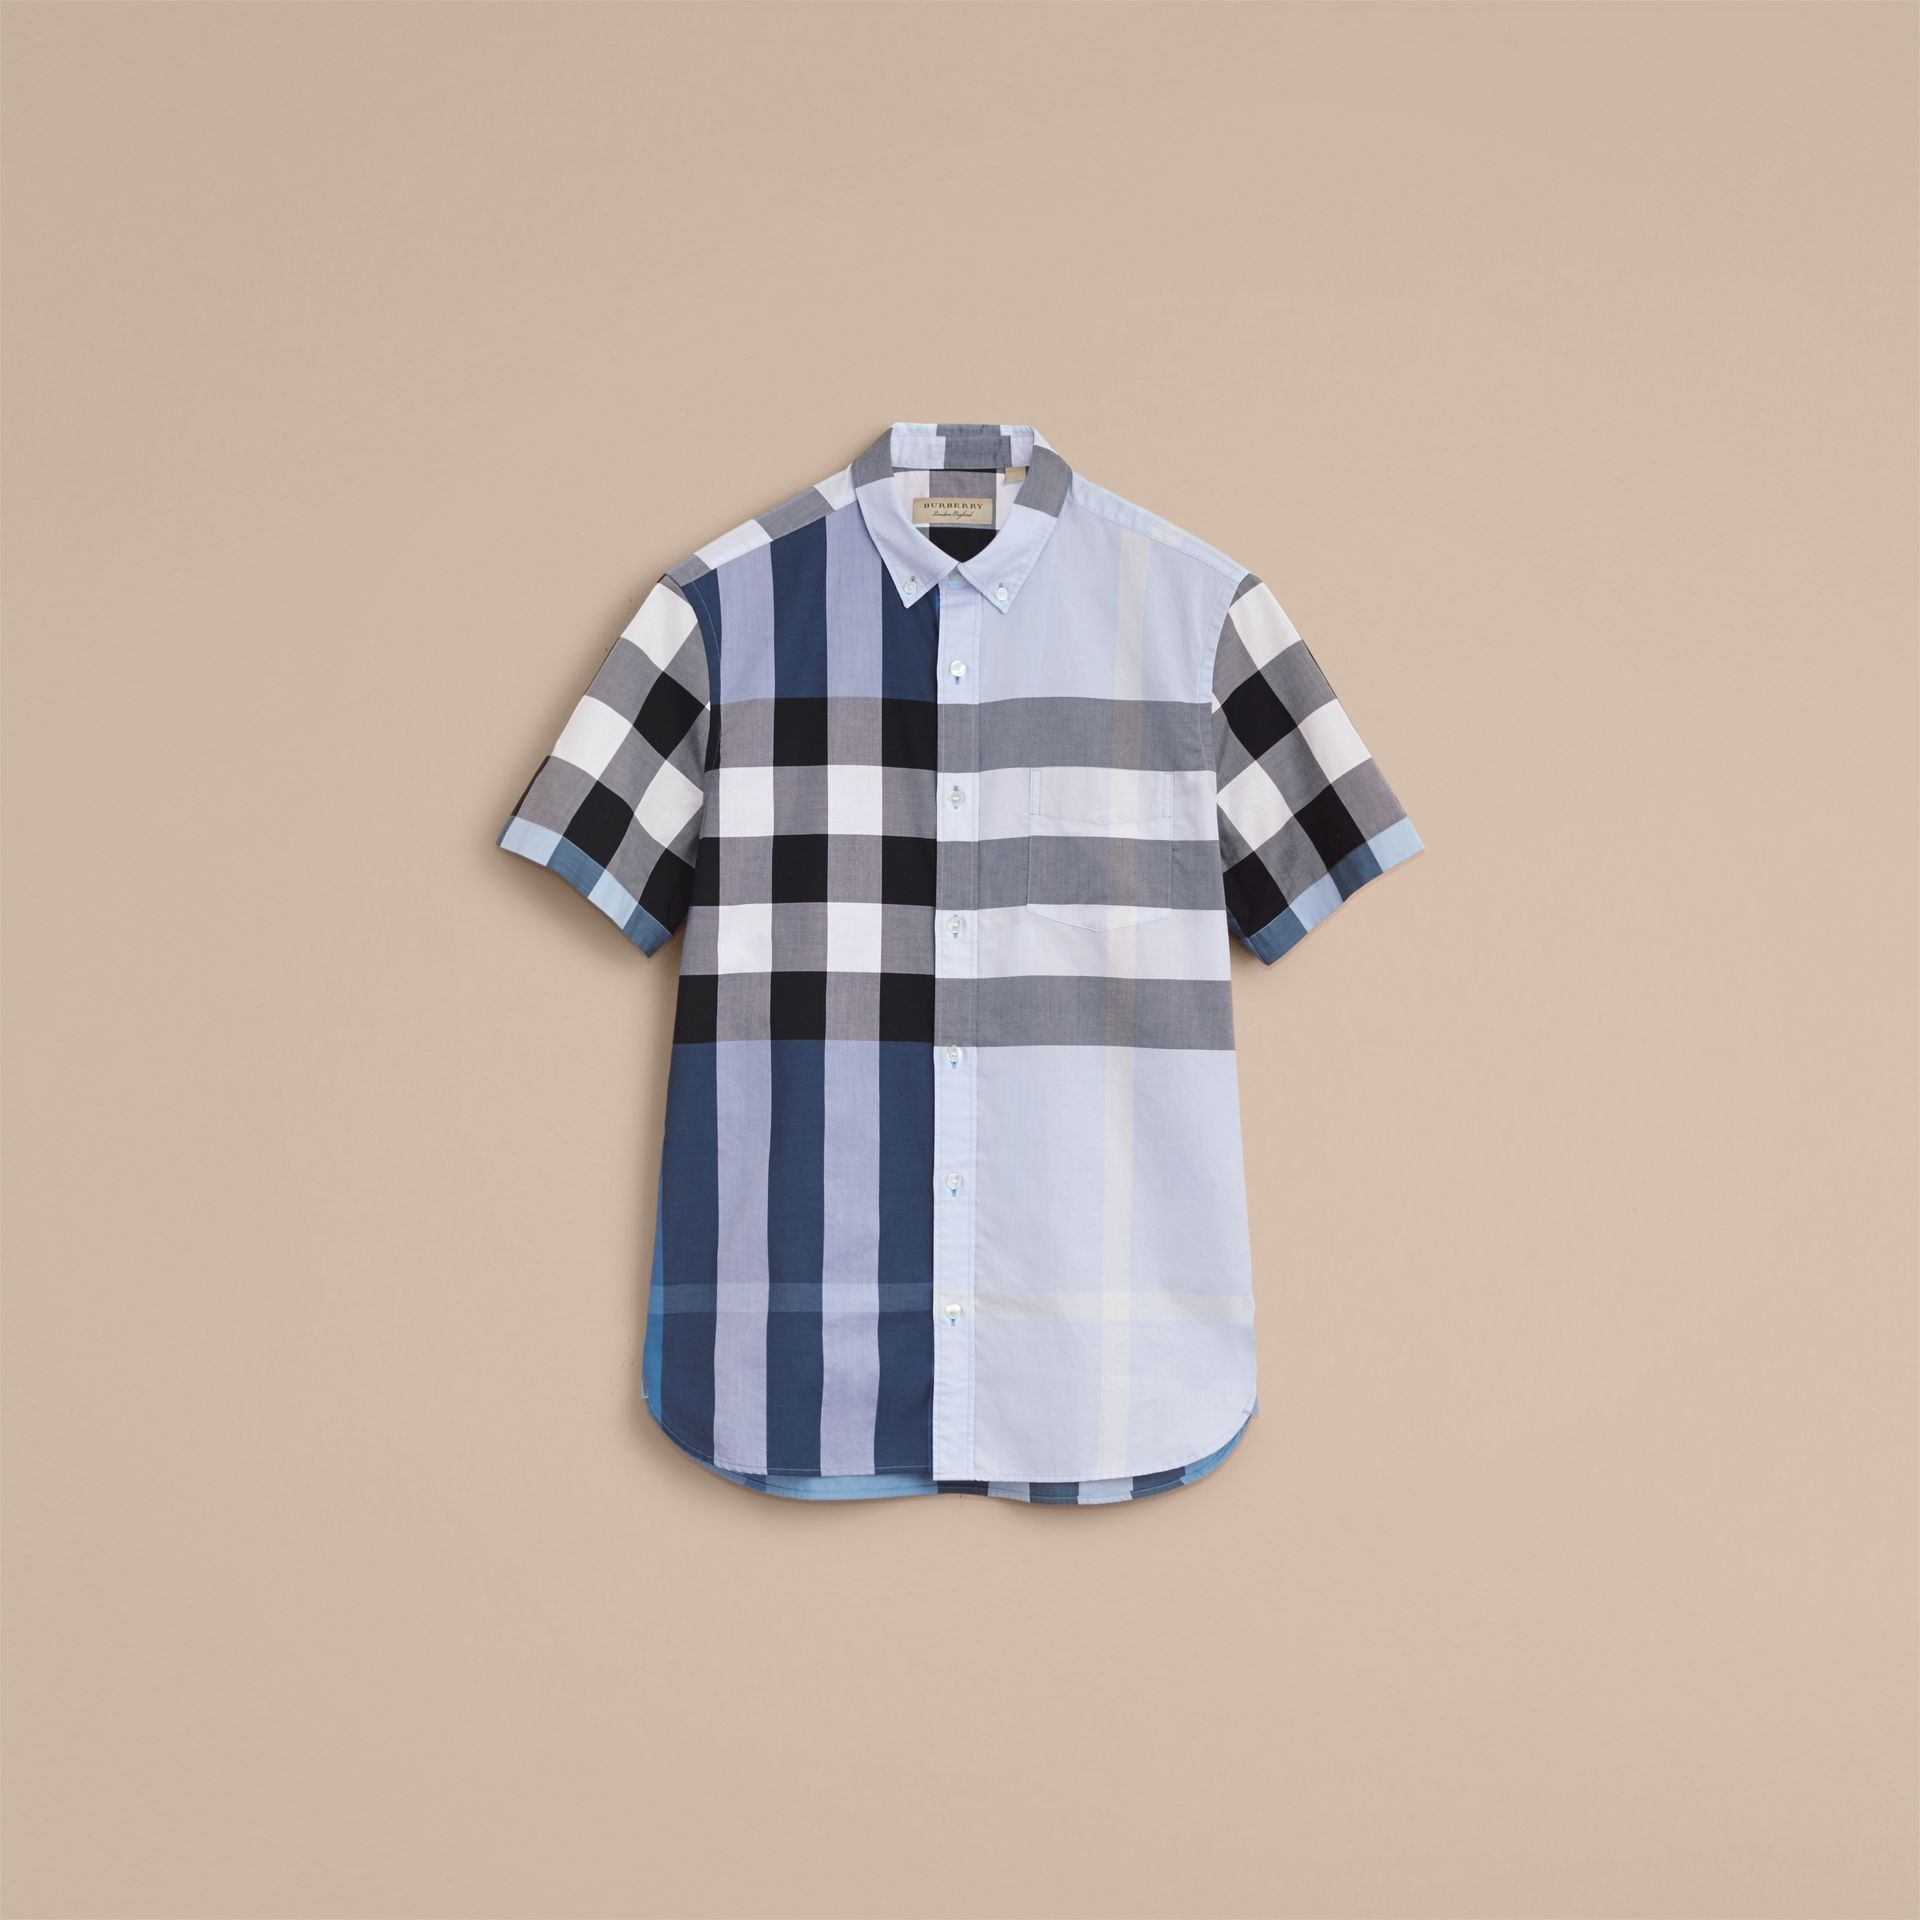 Button-down Collar Short-sleeve Check Cotton Shirt in Lupin Blue - Men | Burberry - gallery image 3